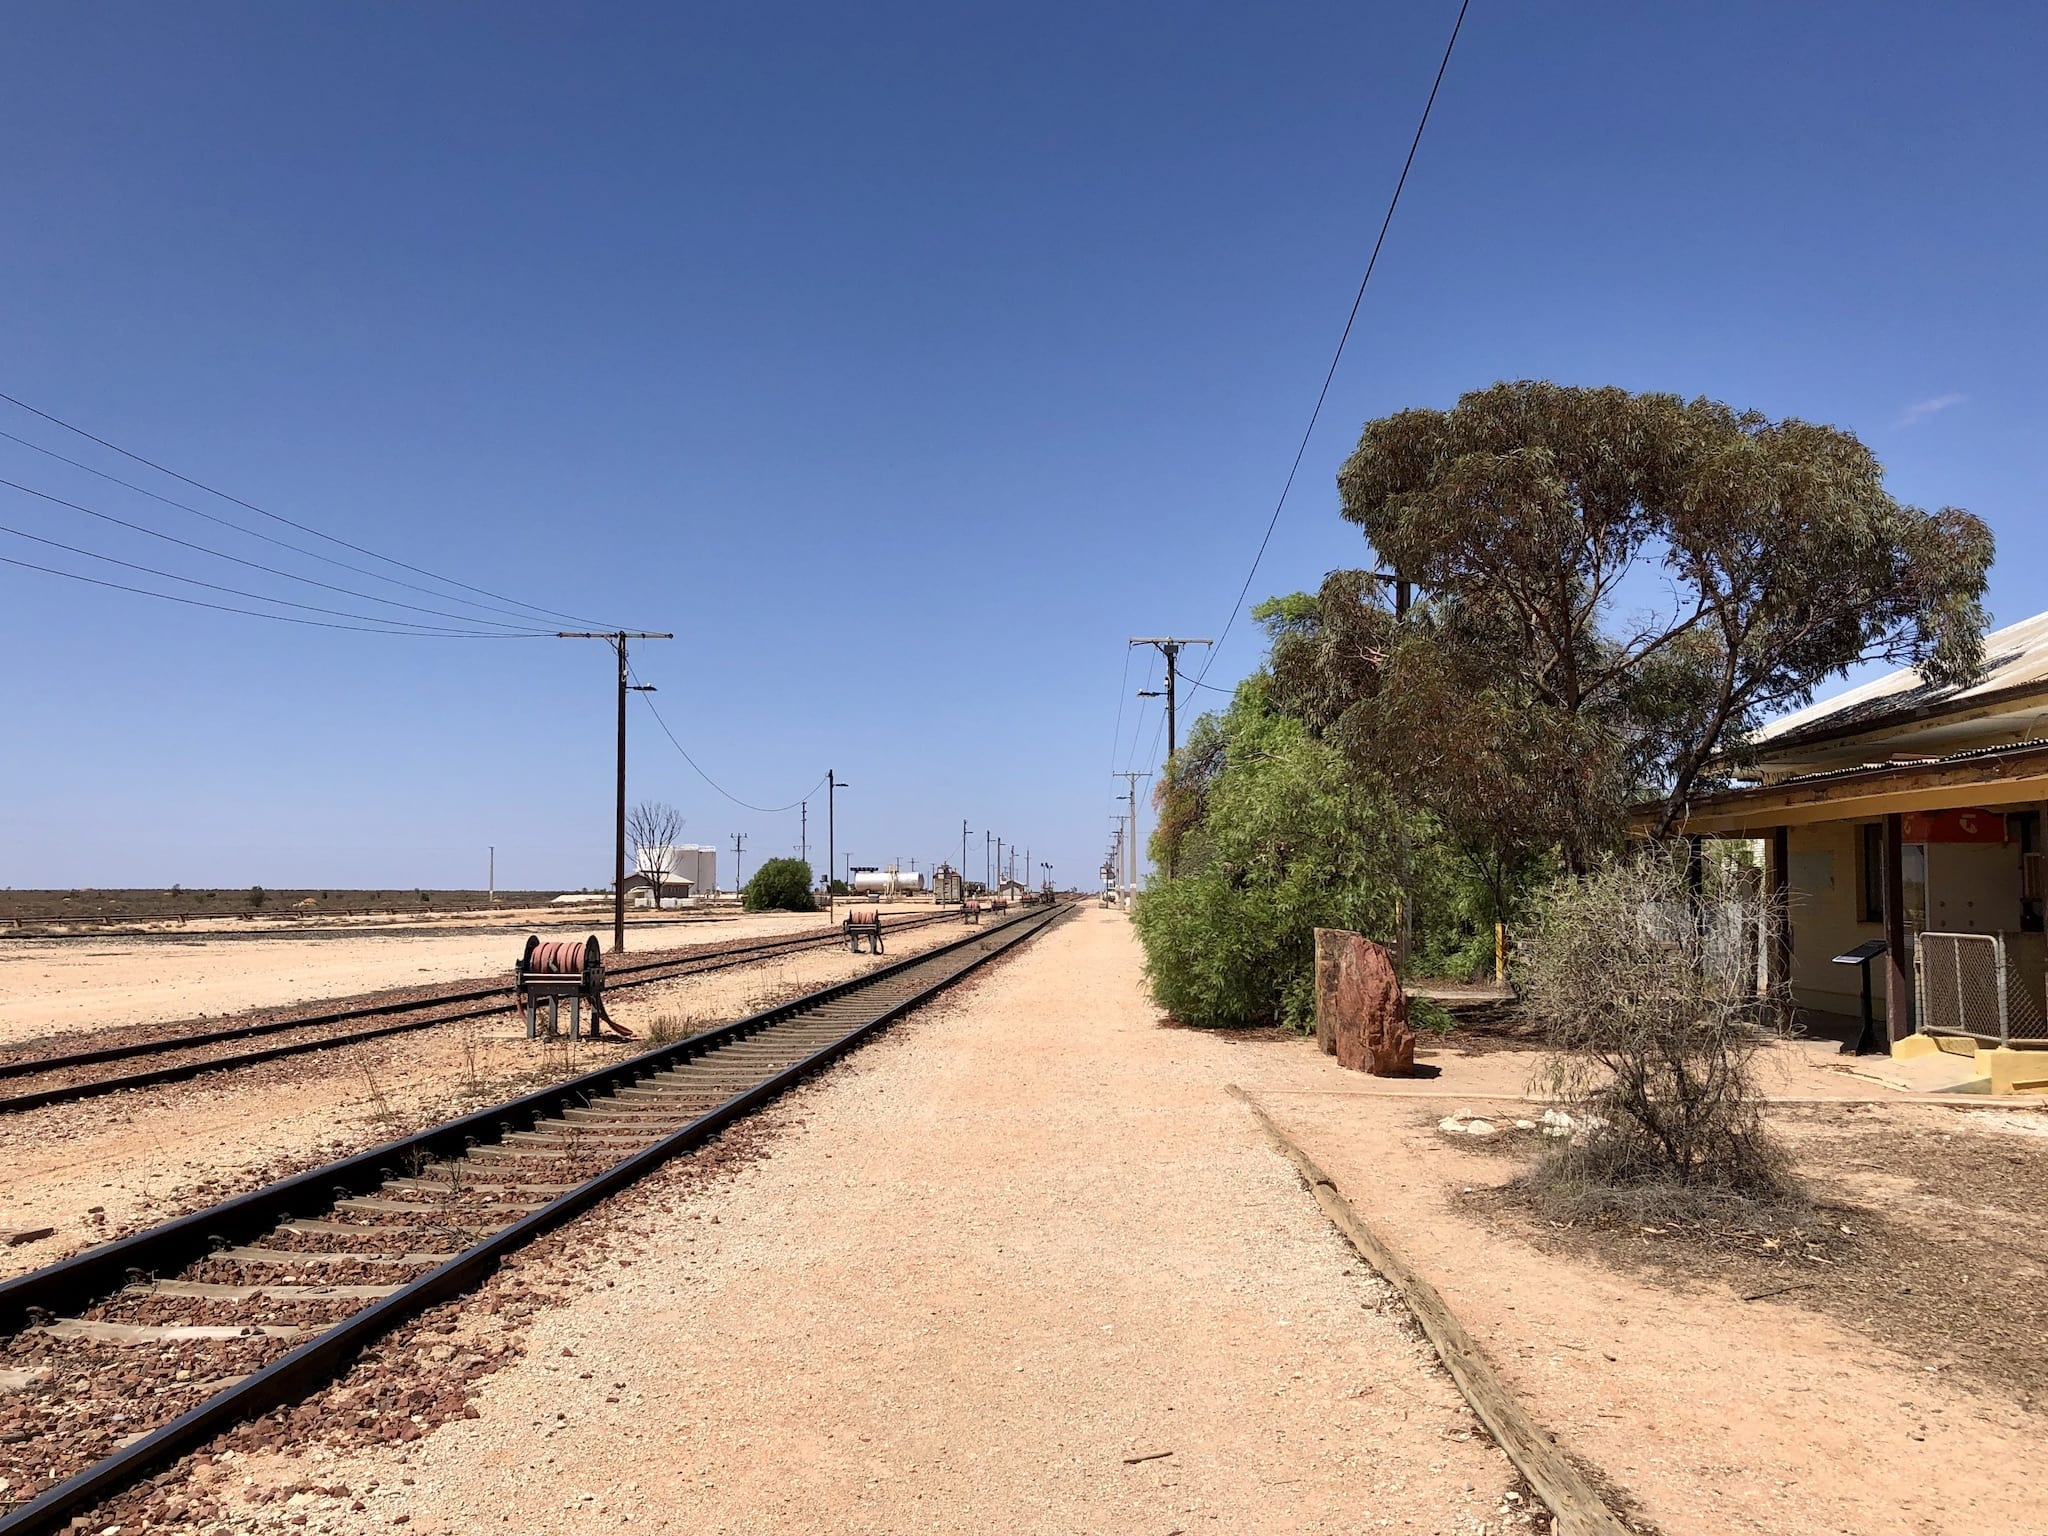 The Trans Australian Railway at Cook, on the longest stretch of rail in the world.